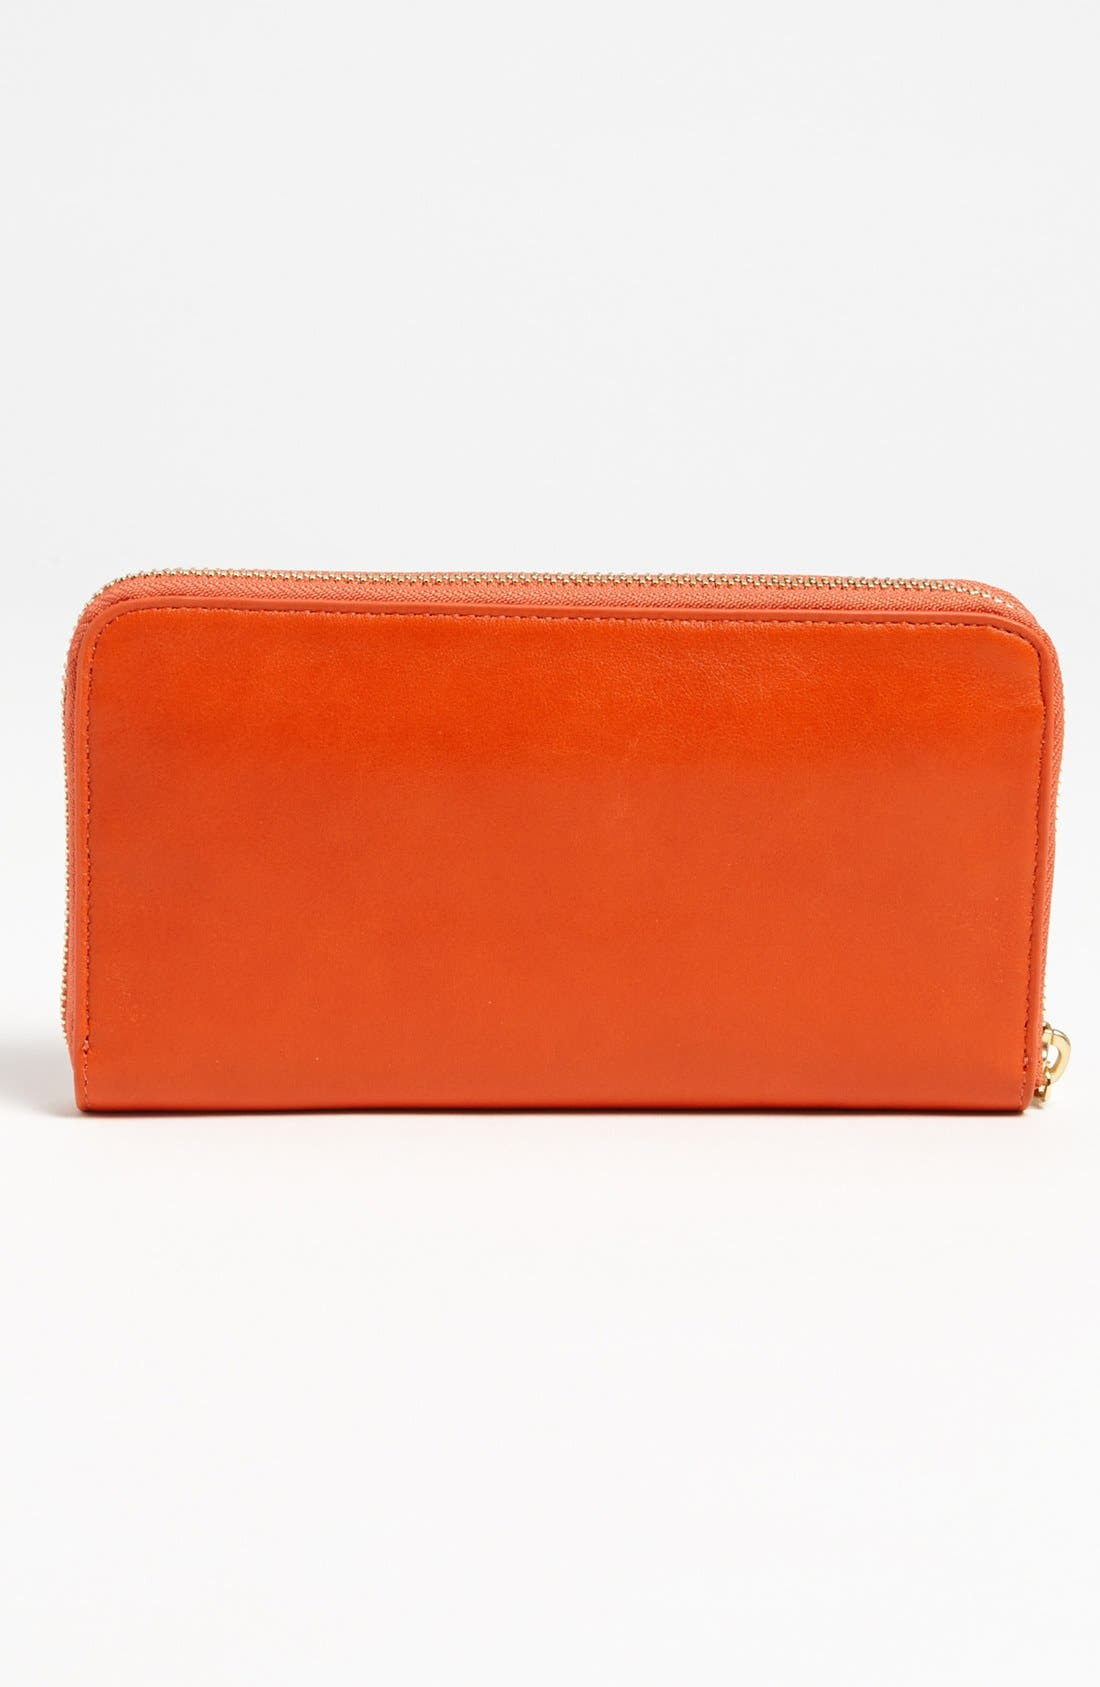 Alternate Image 3  - Tory Burch 'Bow' Leather Zip Wallet